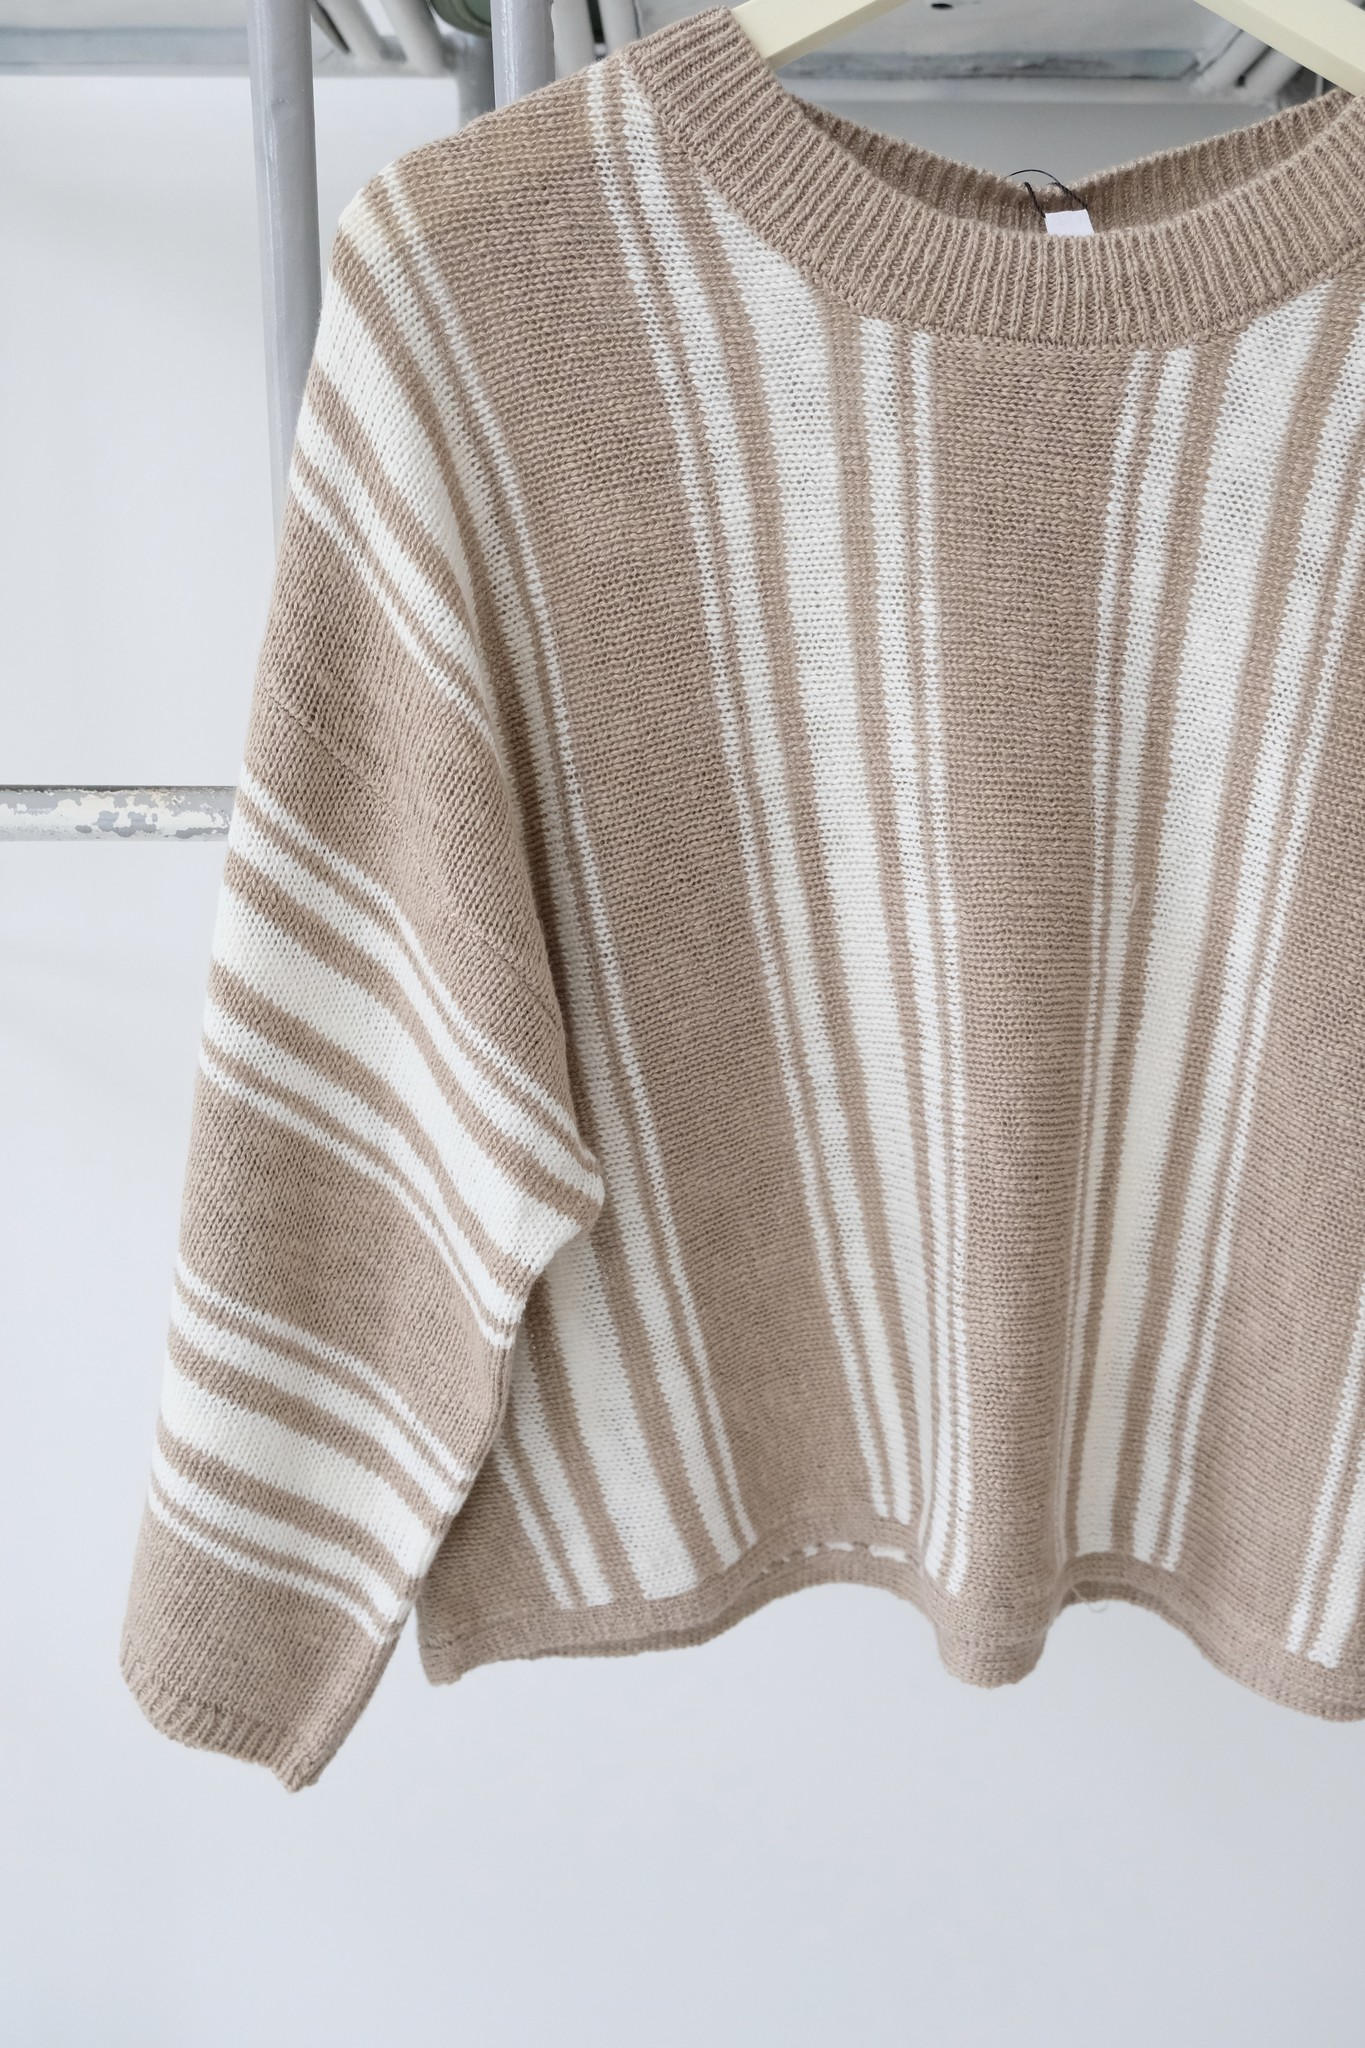 Tan & White Cropped Striped Sweater